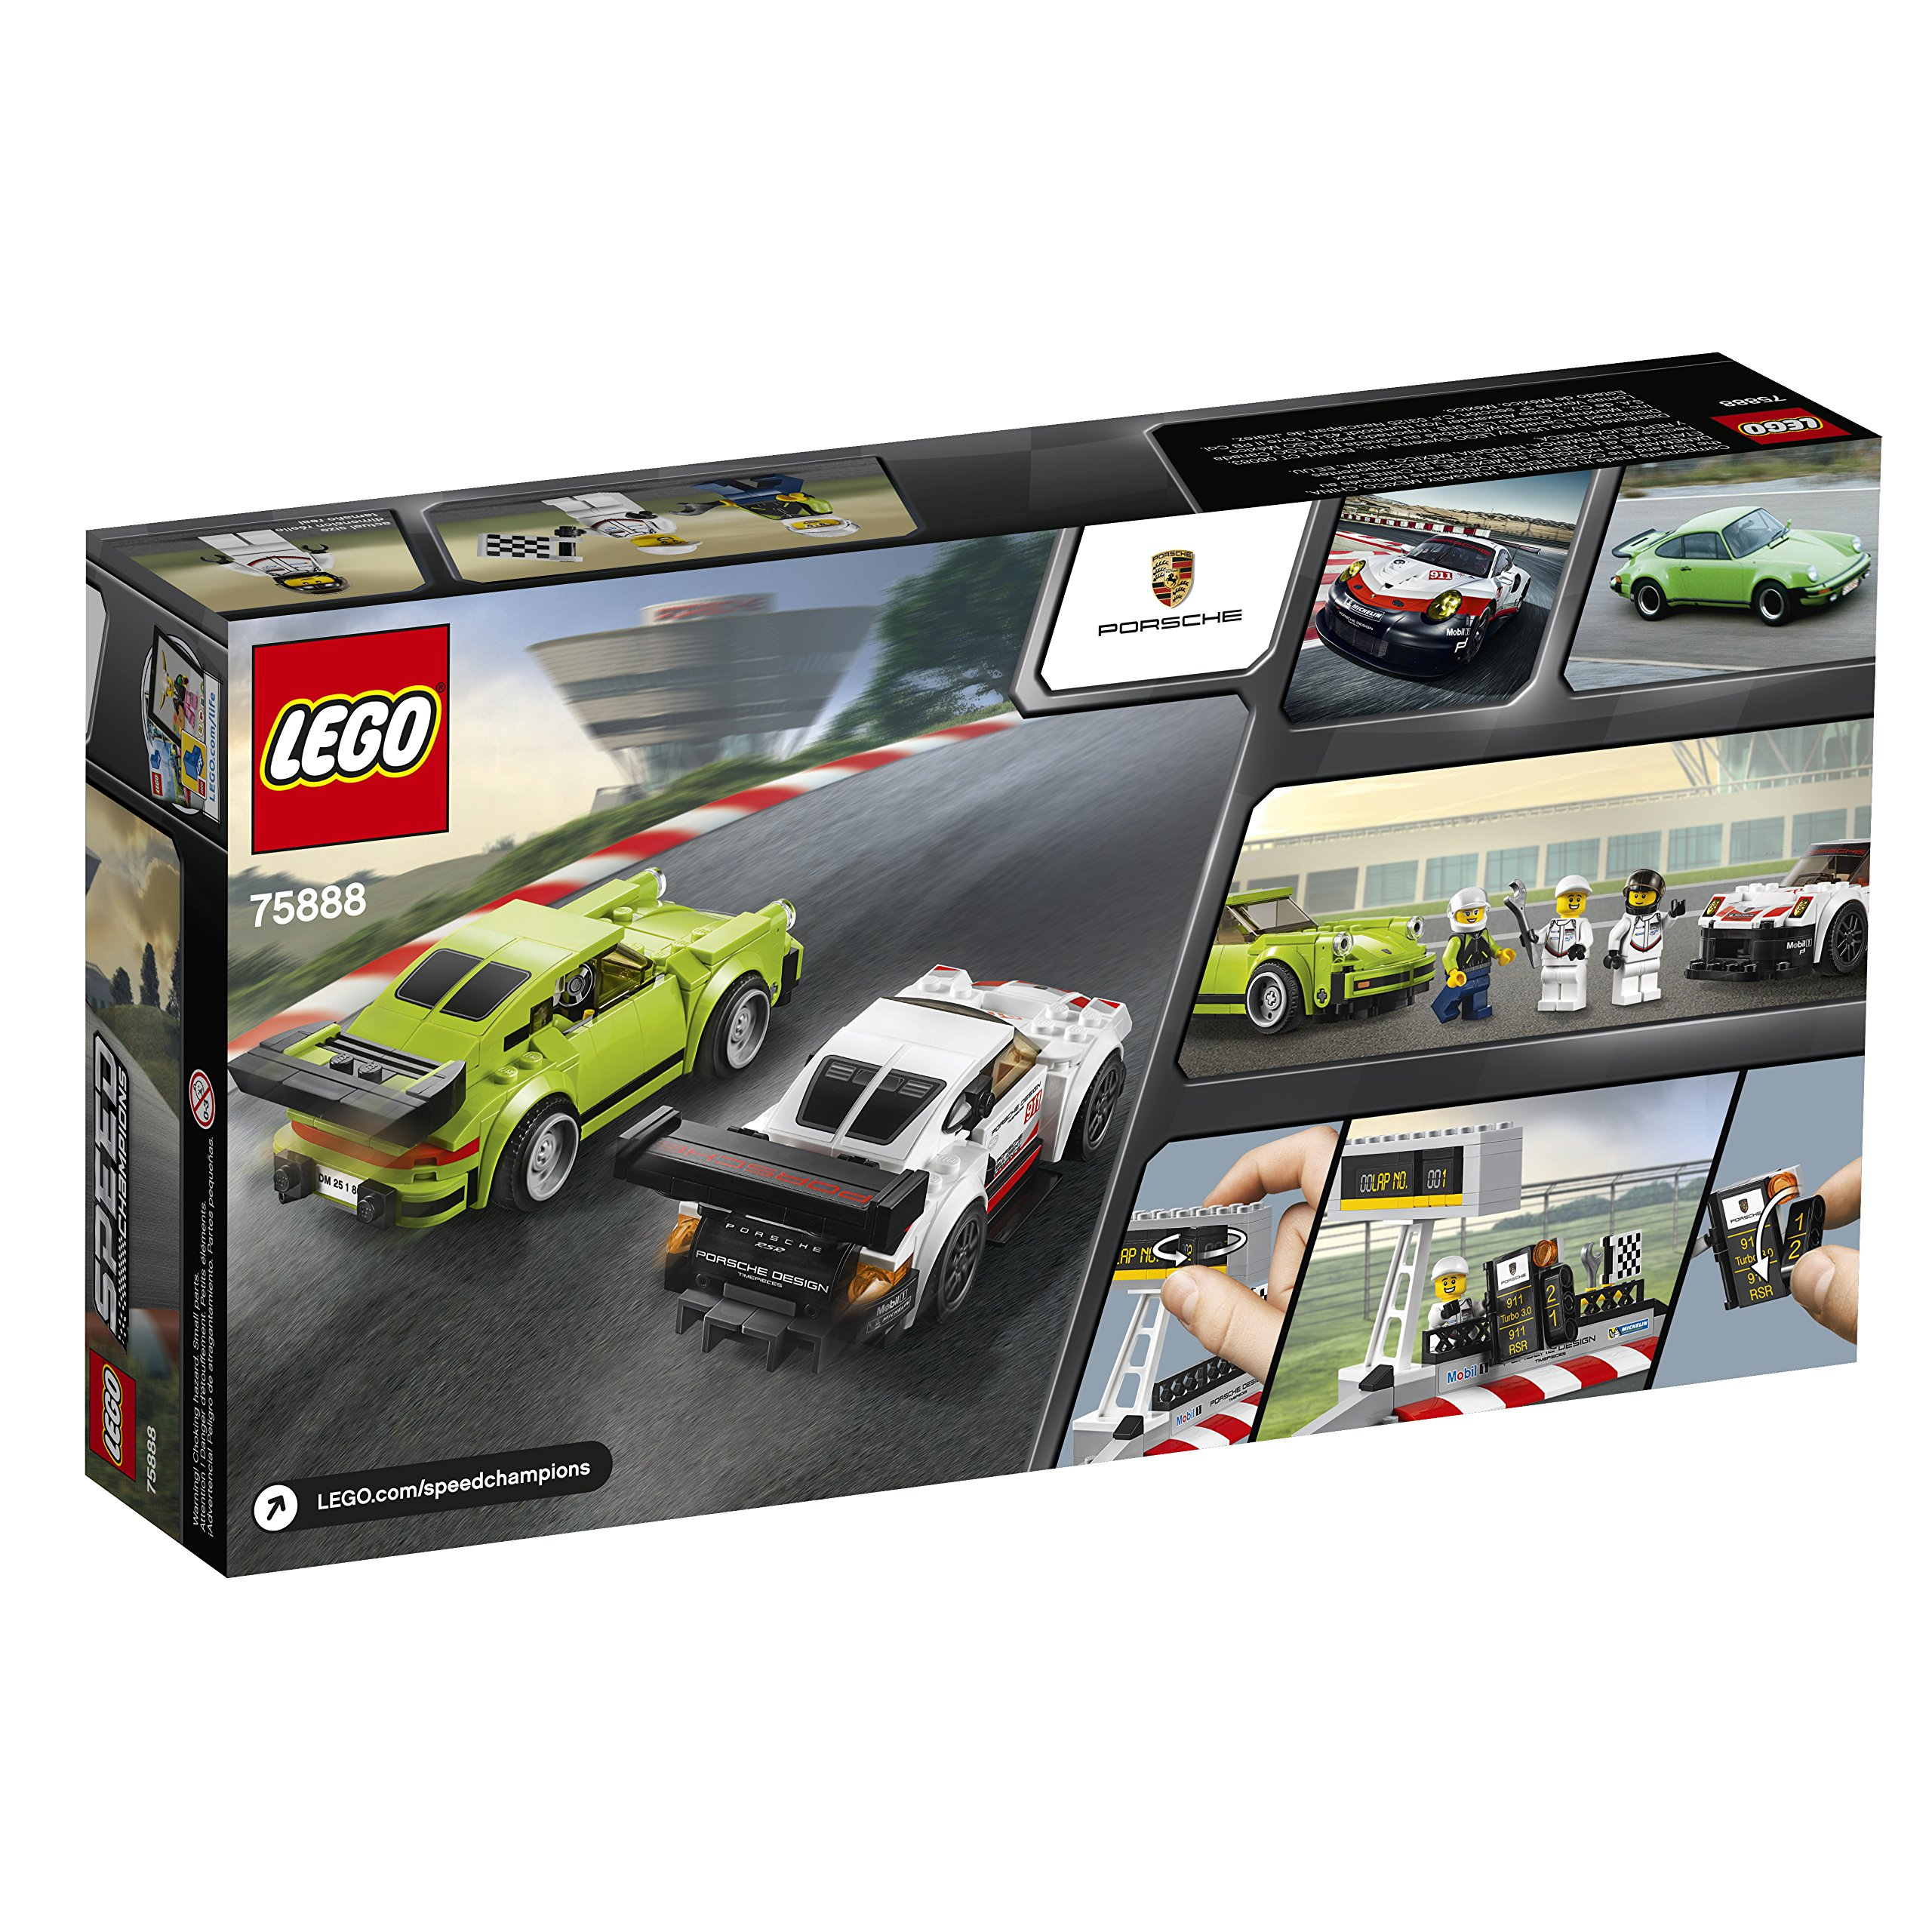 LEGO Speed Champions Porsche 911 RSR and 911 Turbo 3.0 75888 Building Kit (391 Piece) by LEGO (Image #9)